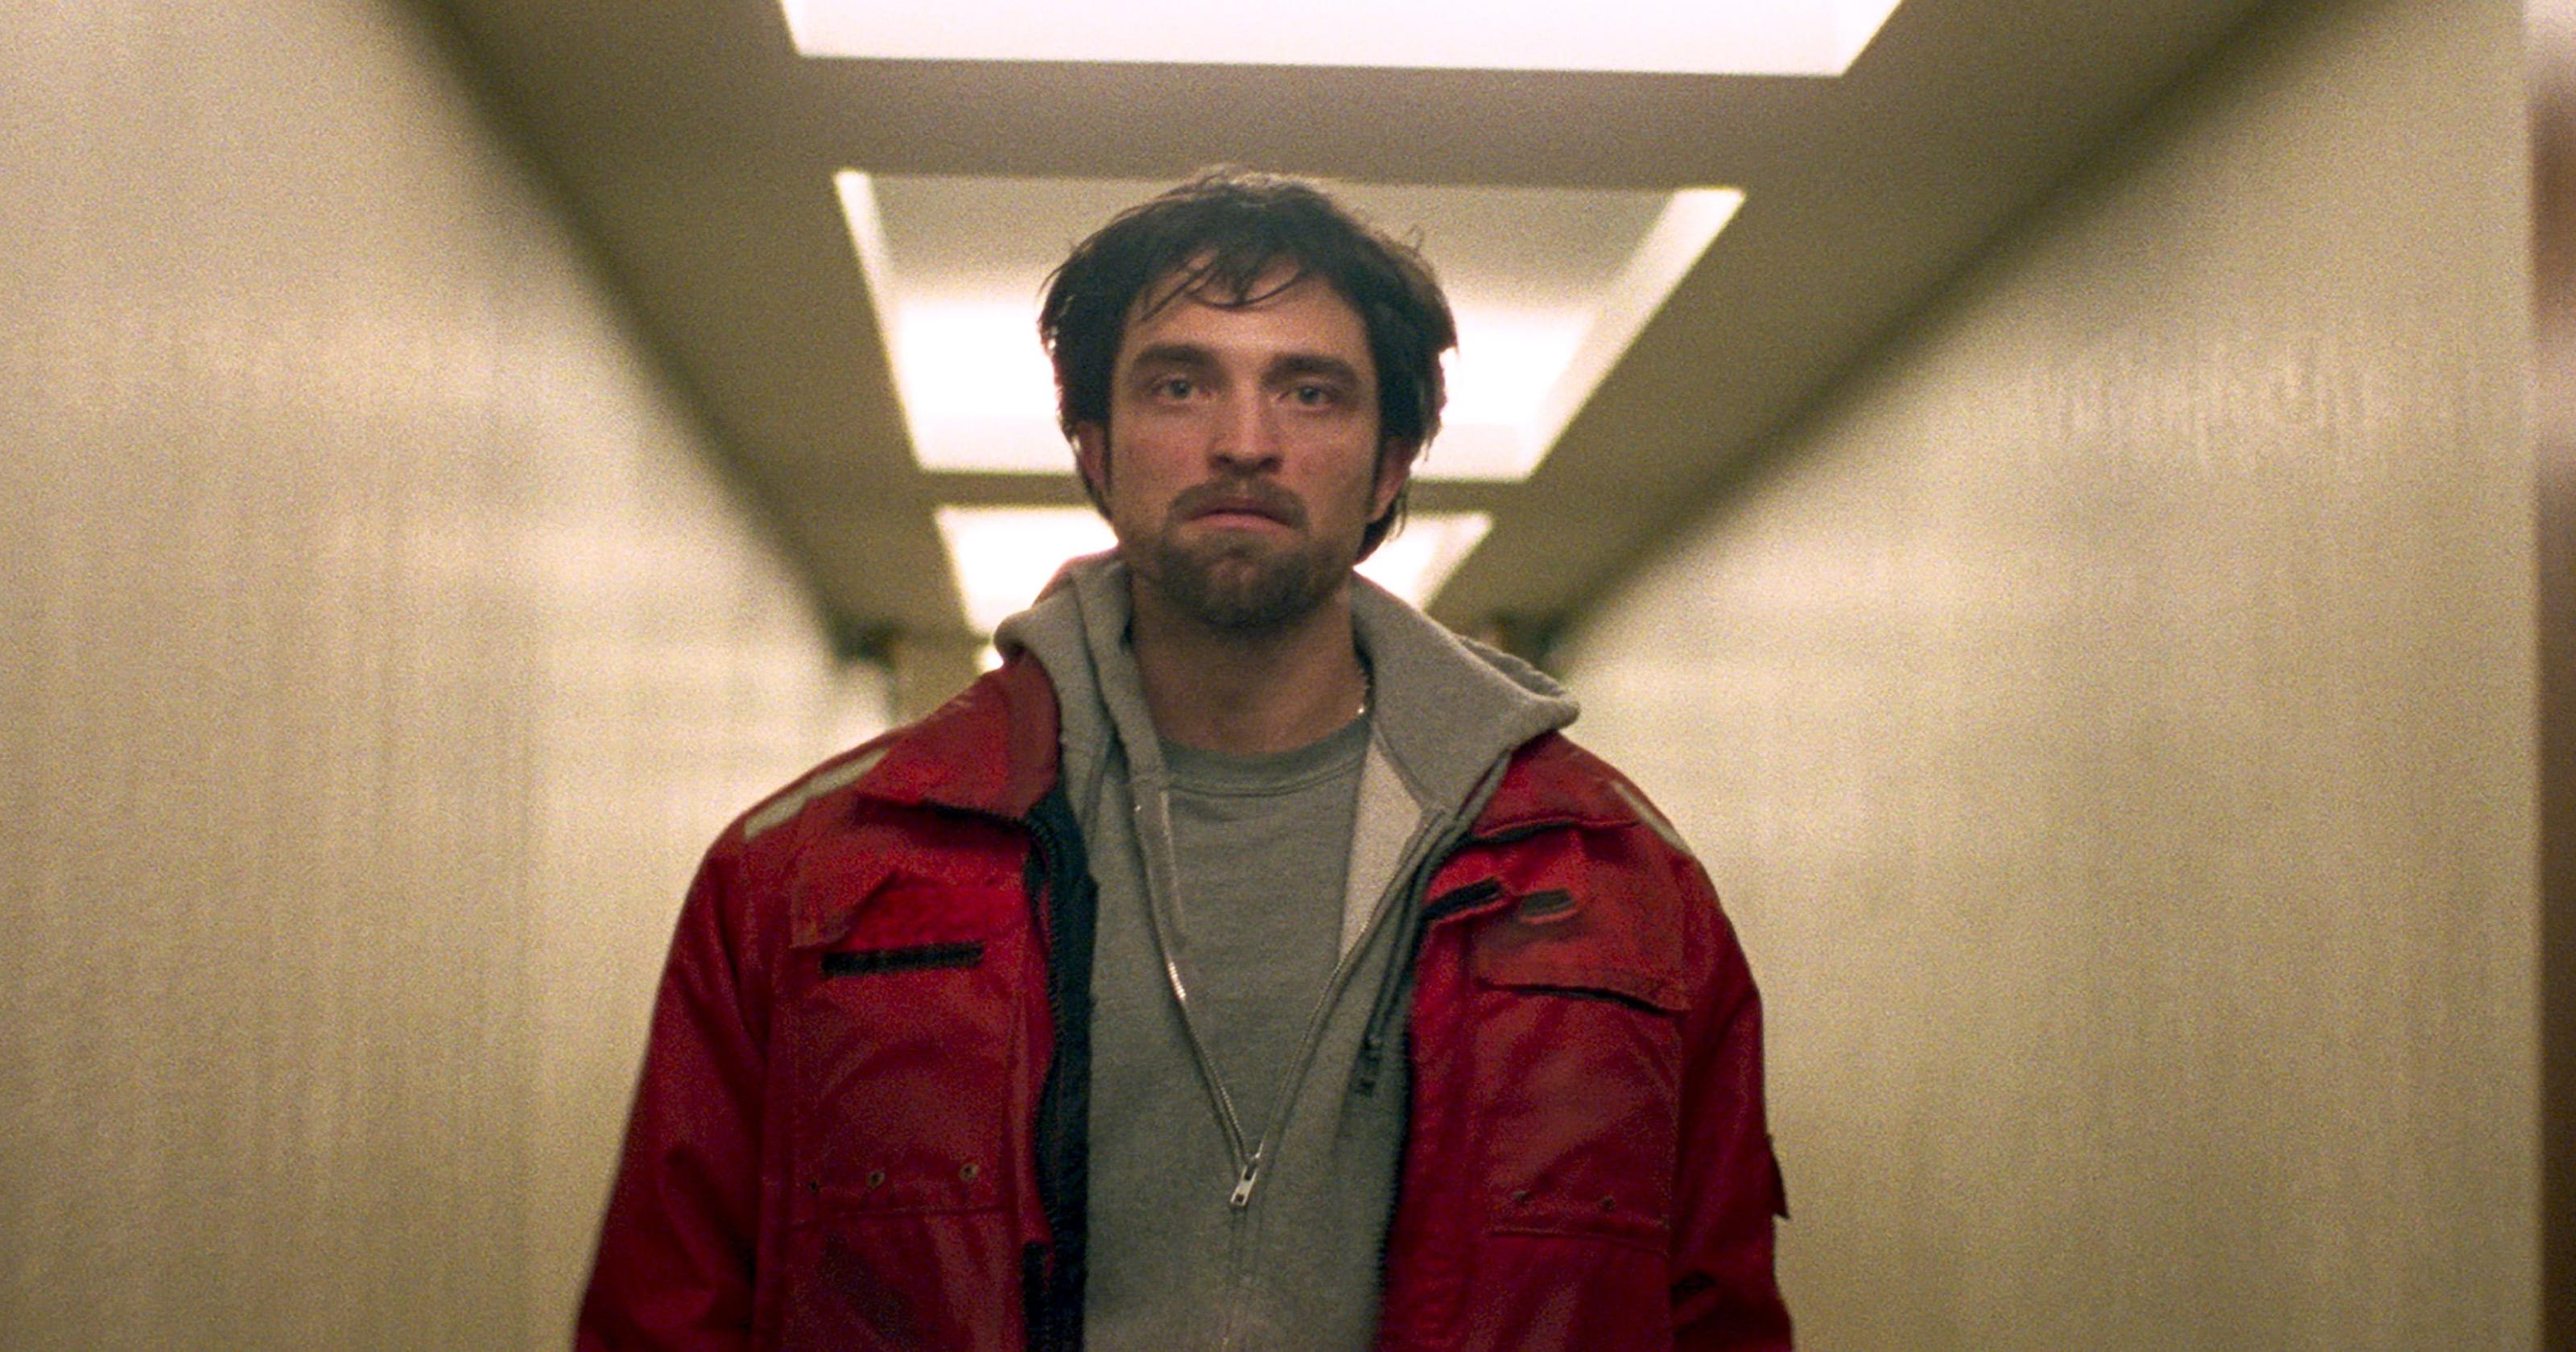 67e45368b46 Edward who? 'Good Time' is Robert Pattinson's top post-'Twilight' role